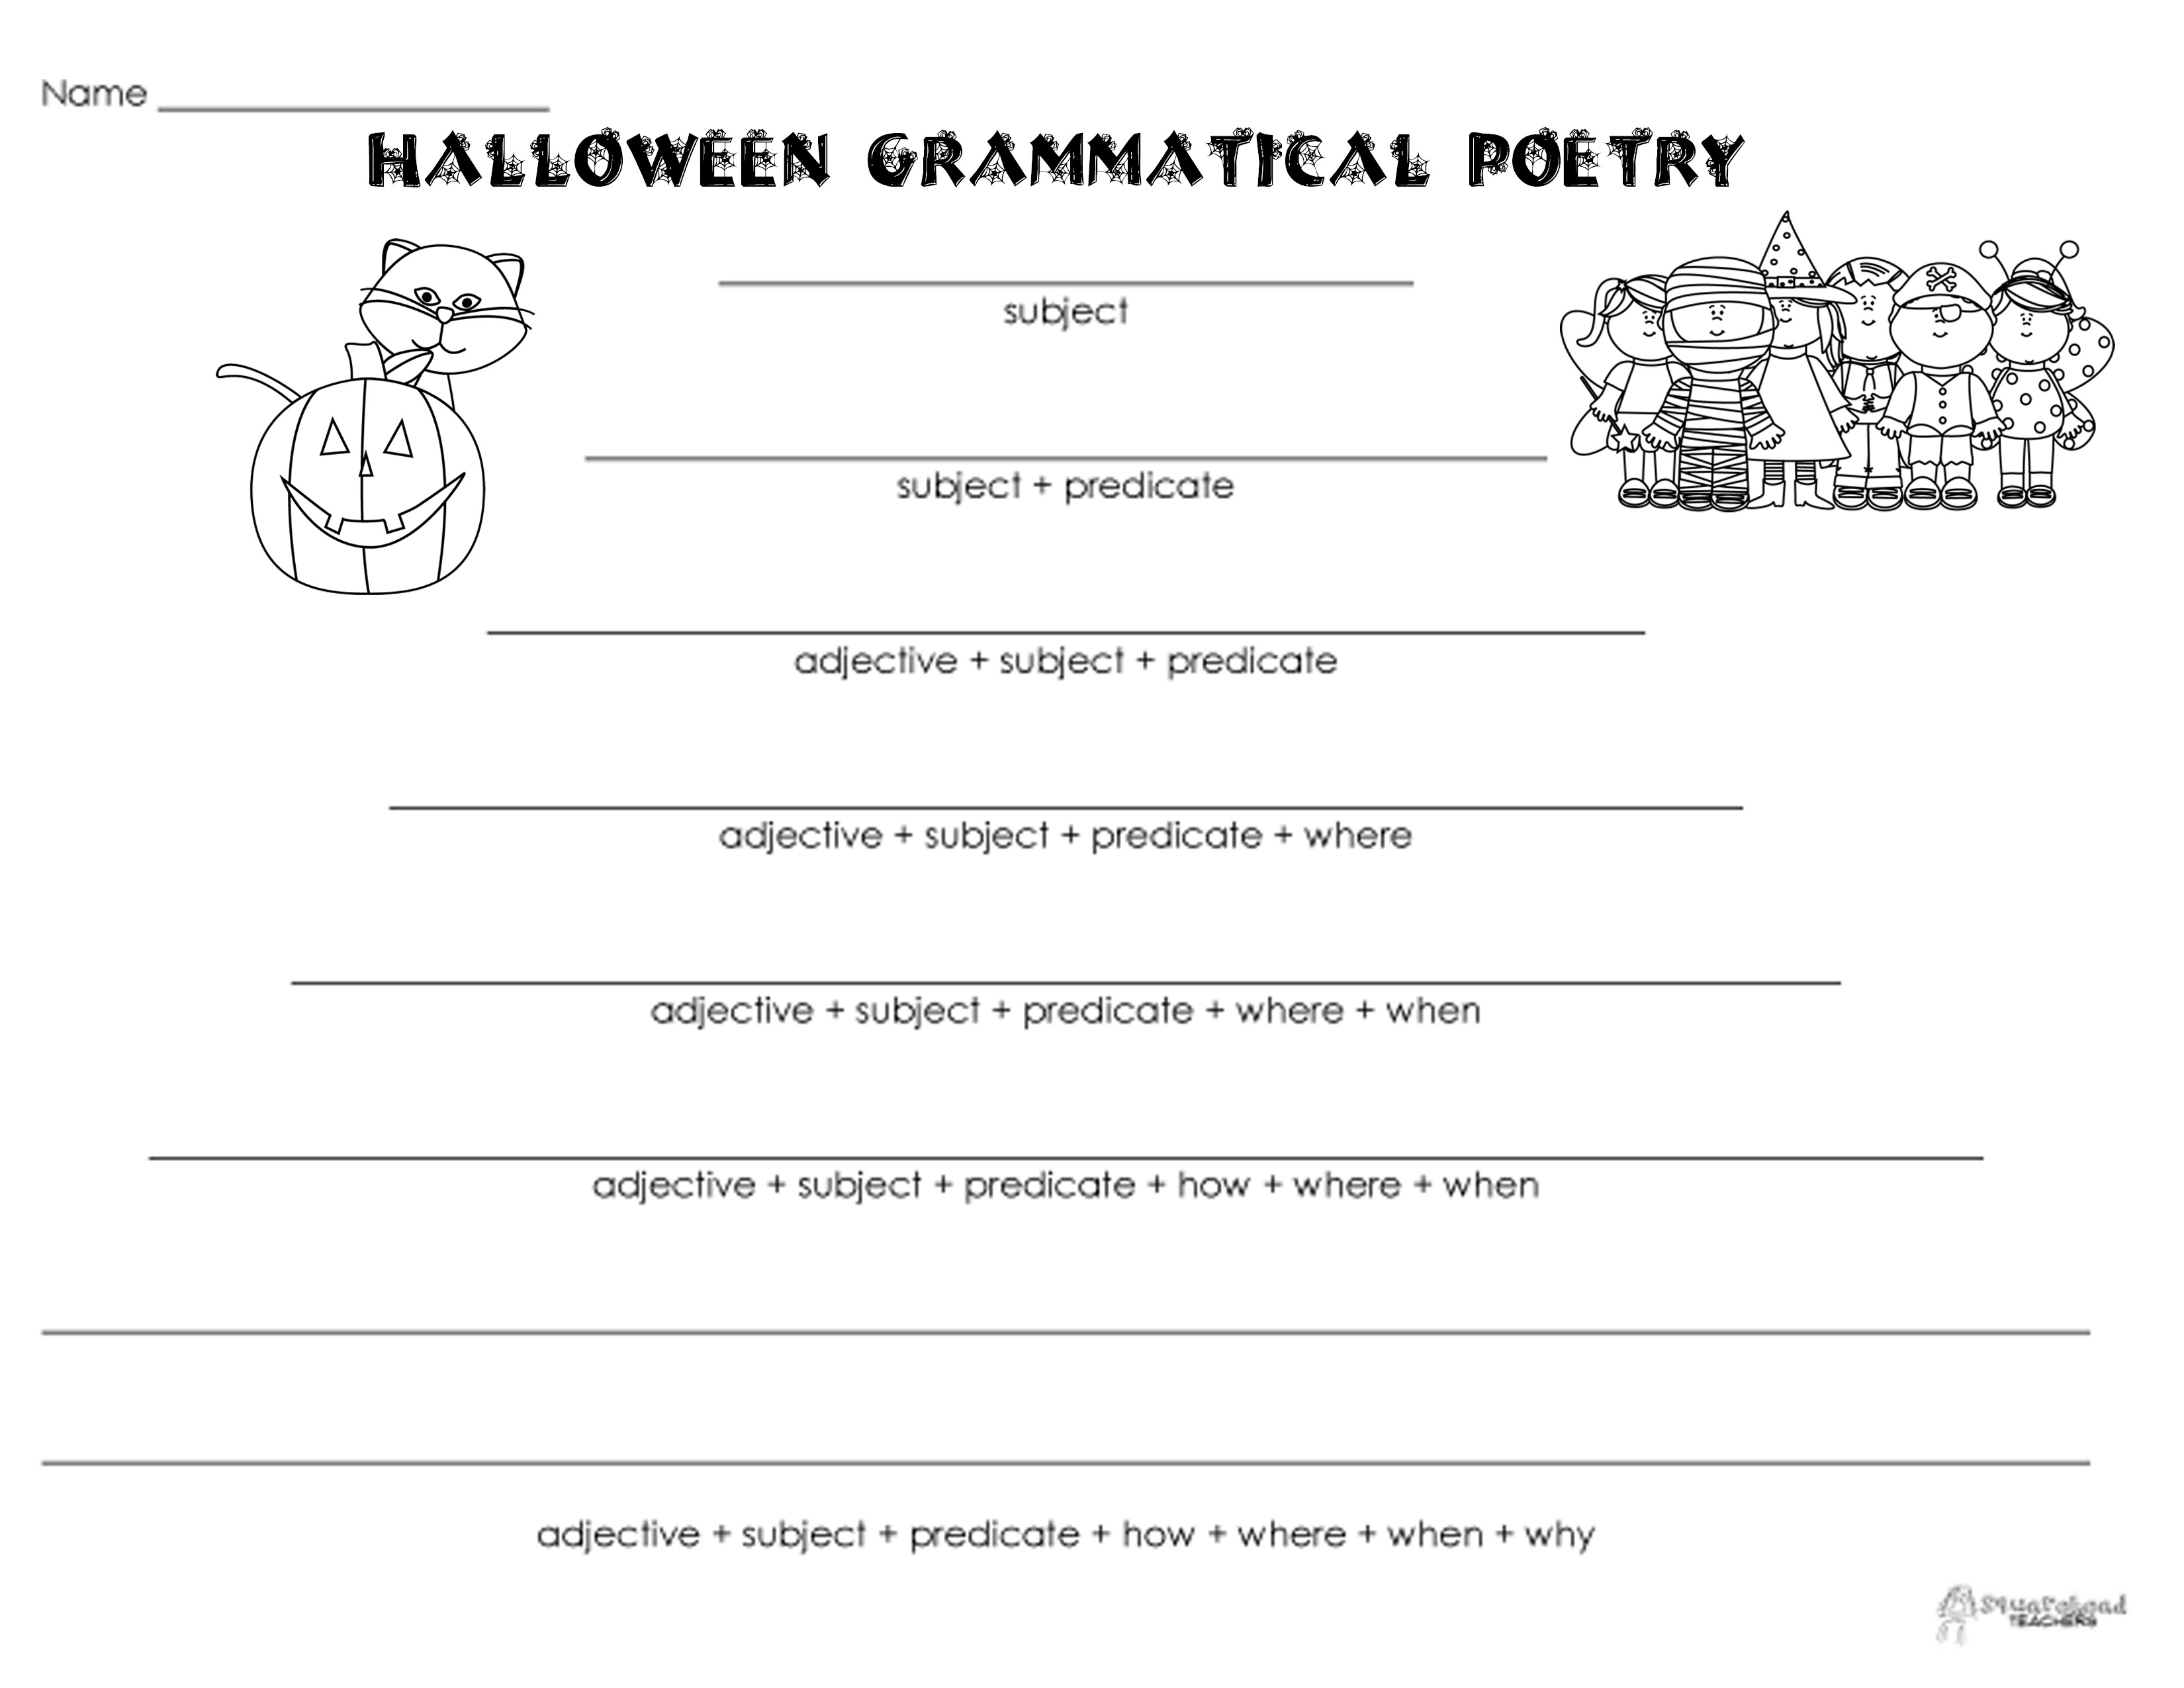 Grammatical Poetry Halloween